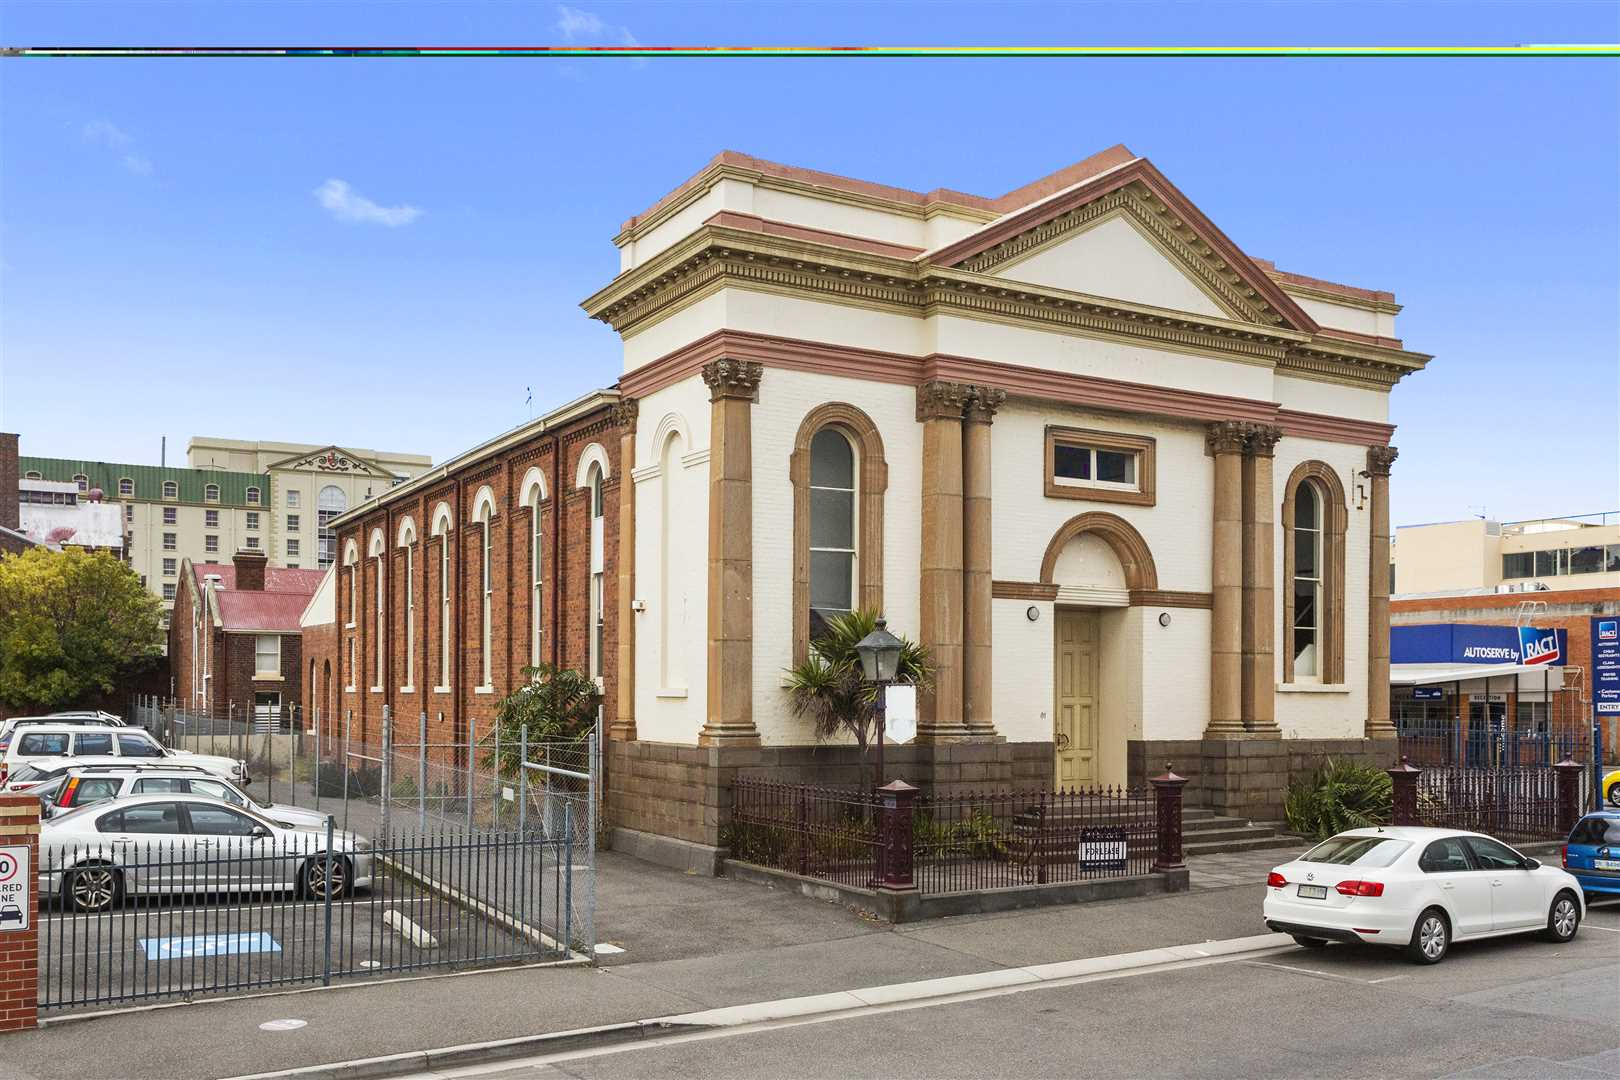 Iconic Launceston Offering - Baptist Tabernacle